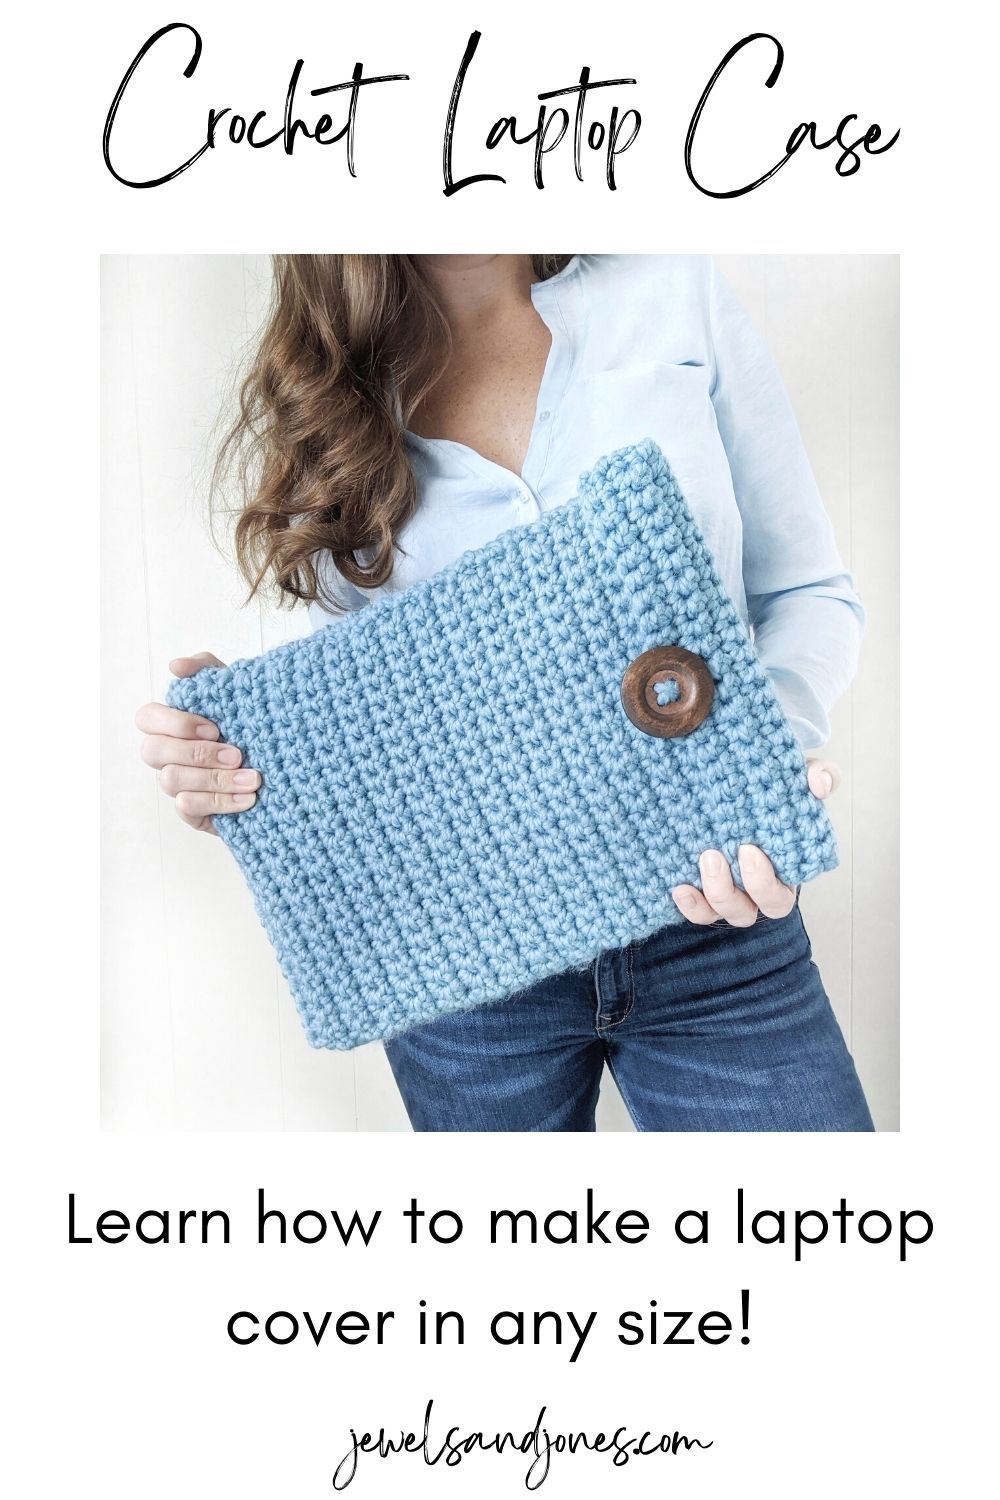 Learn how to crochet a laptop in any size